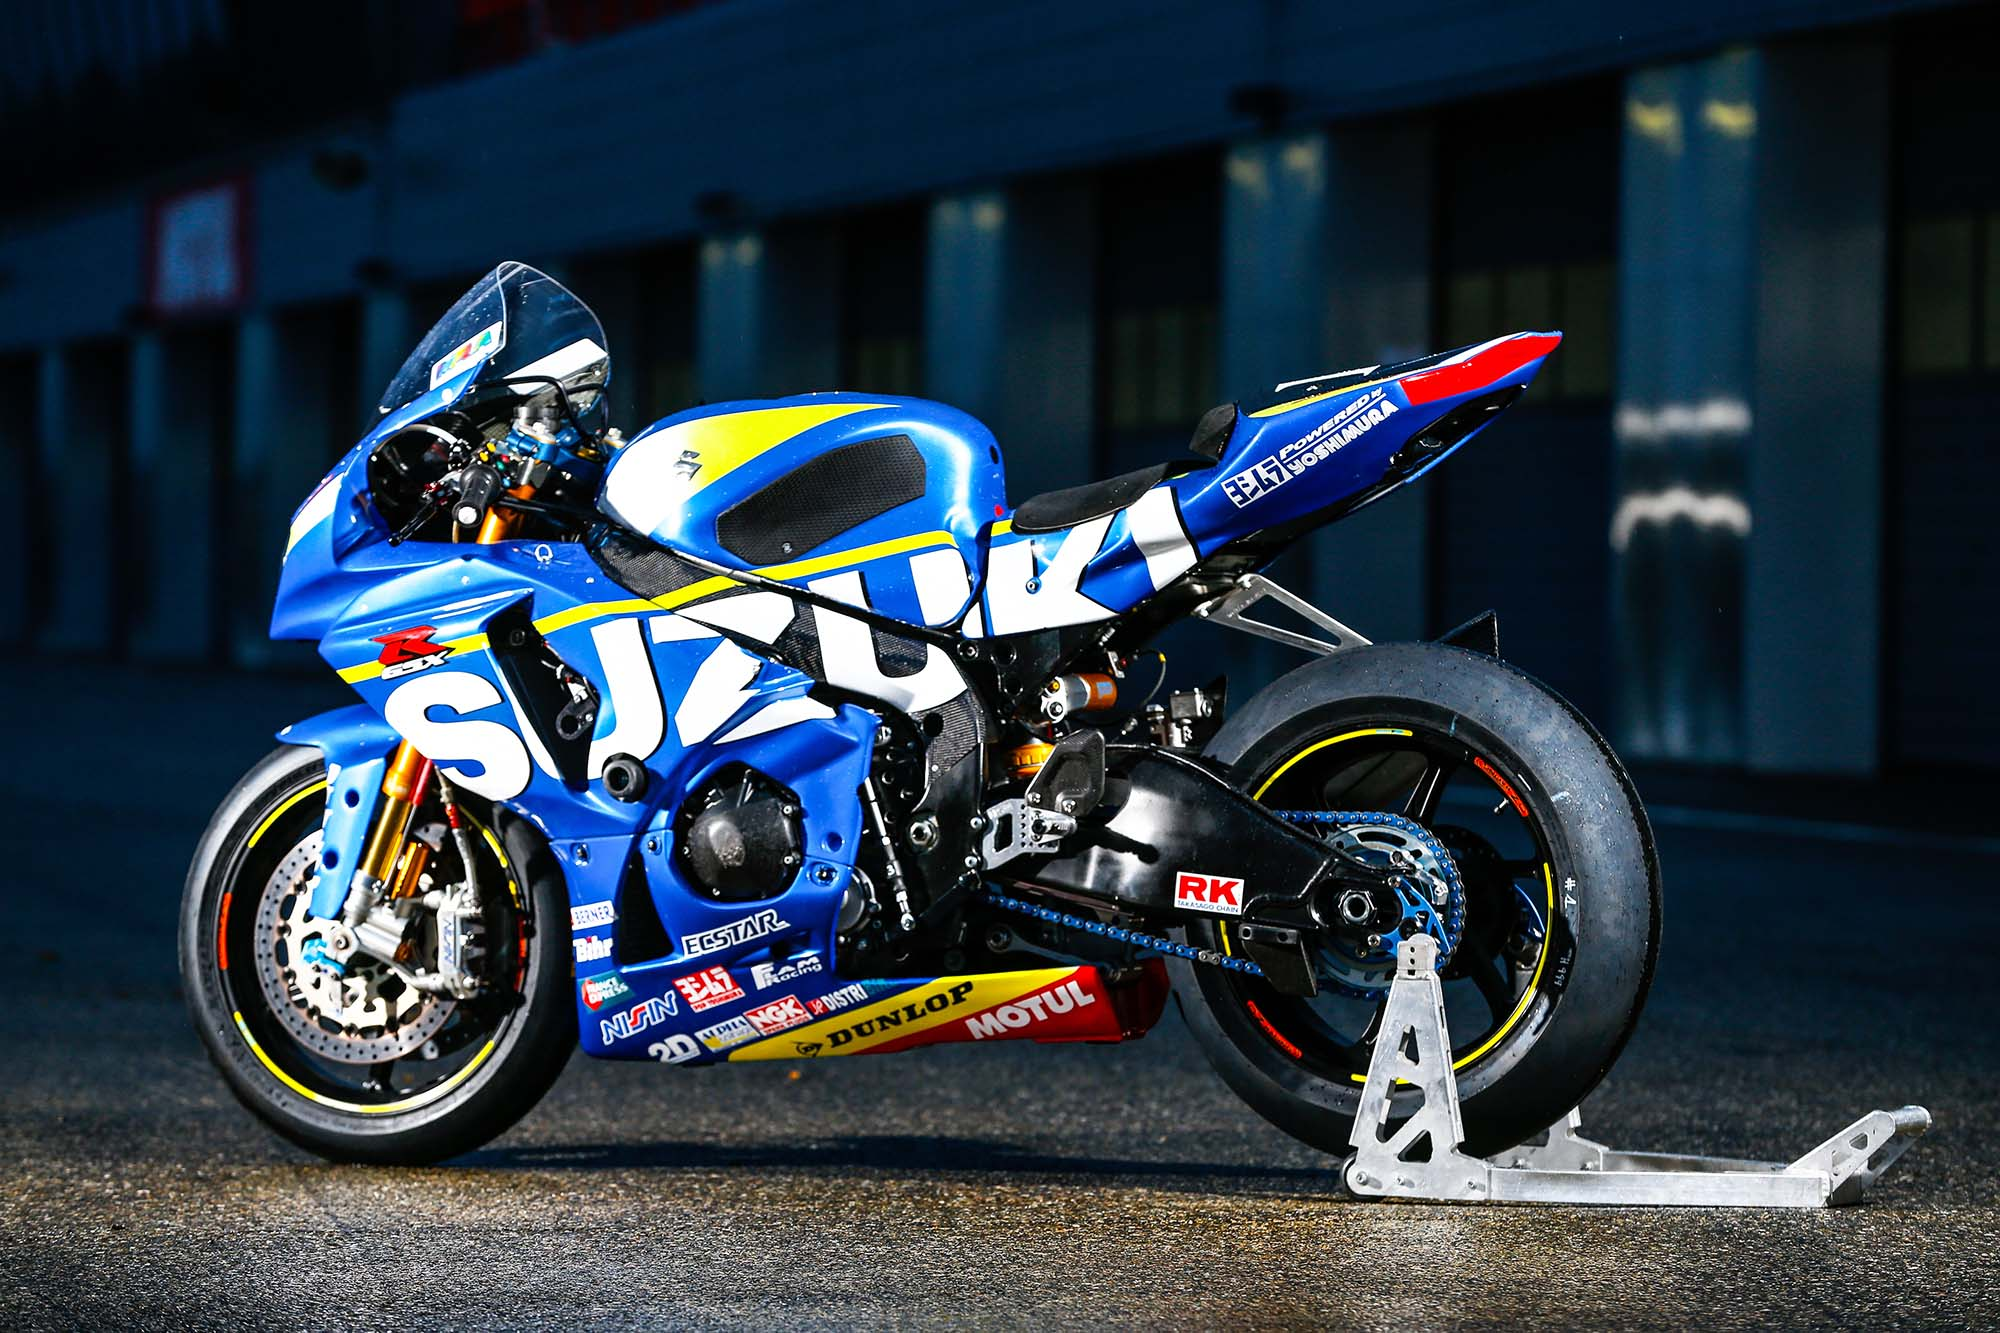 Racing Bike Sert Suzuki Gsx-r1000 World Endurance Race Bike